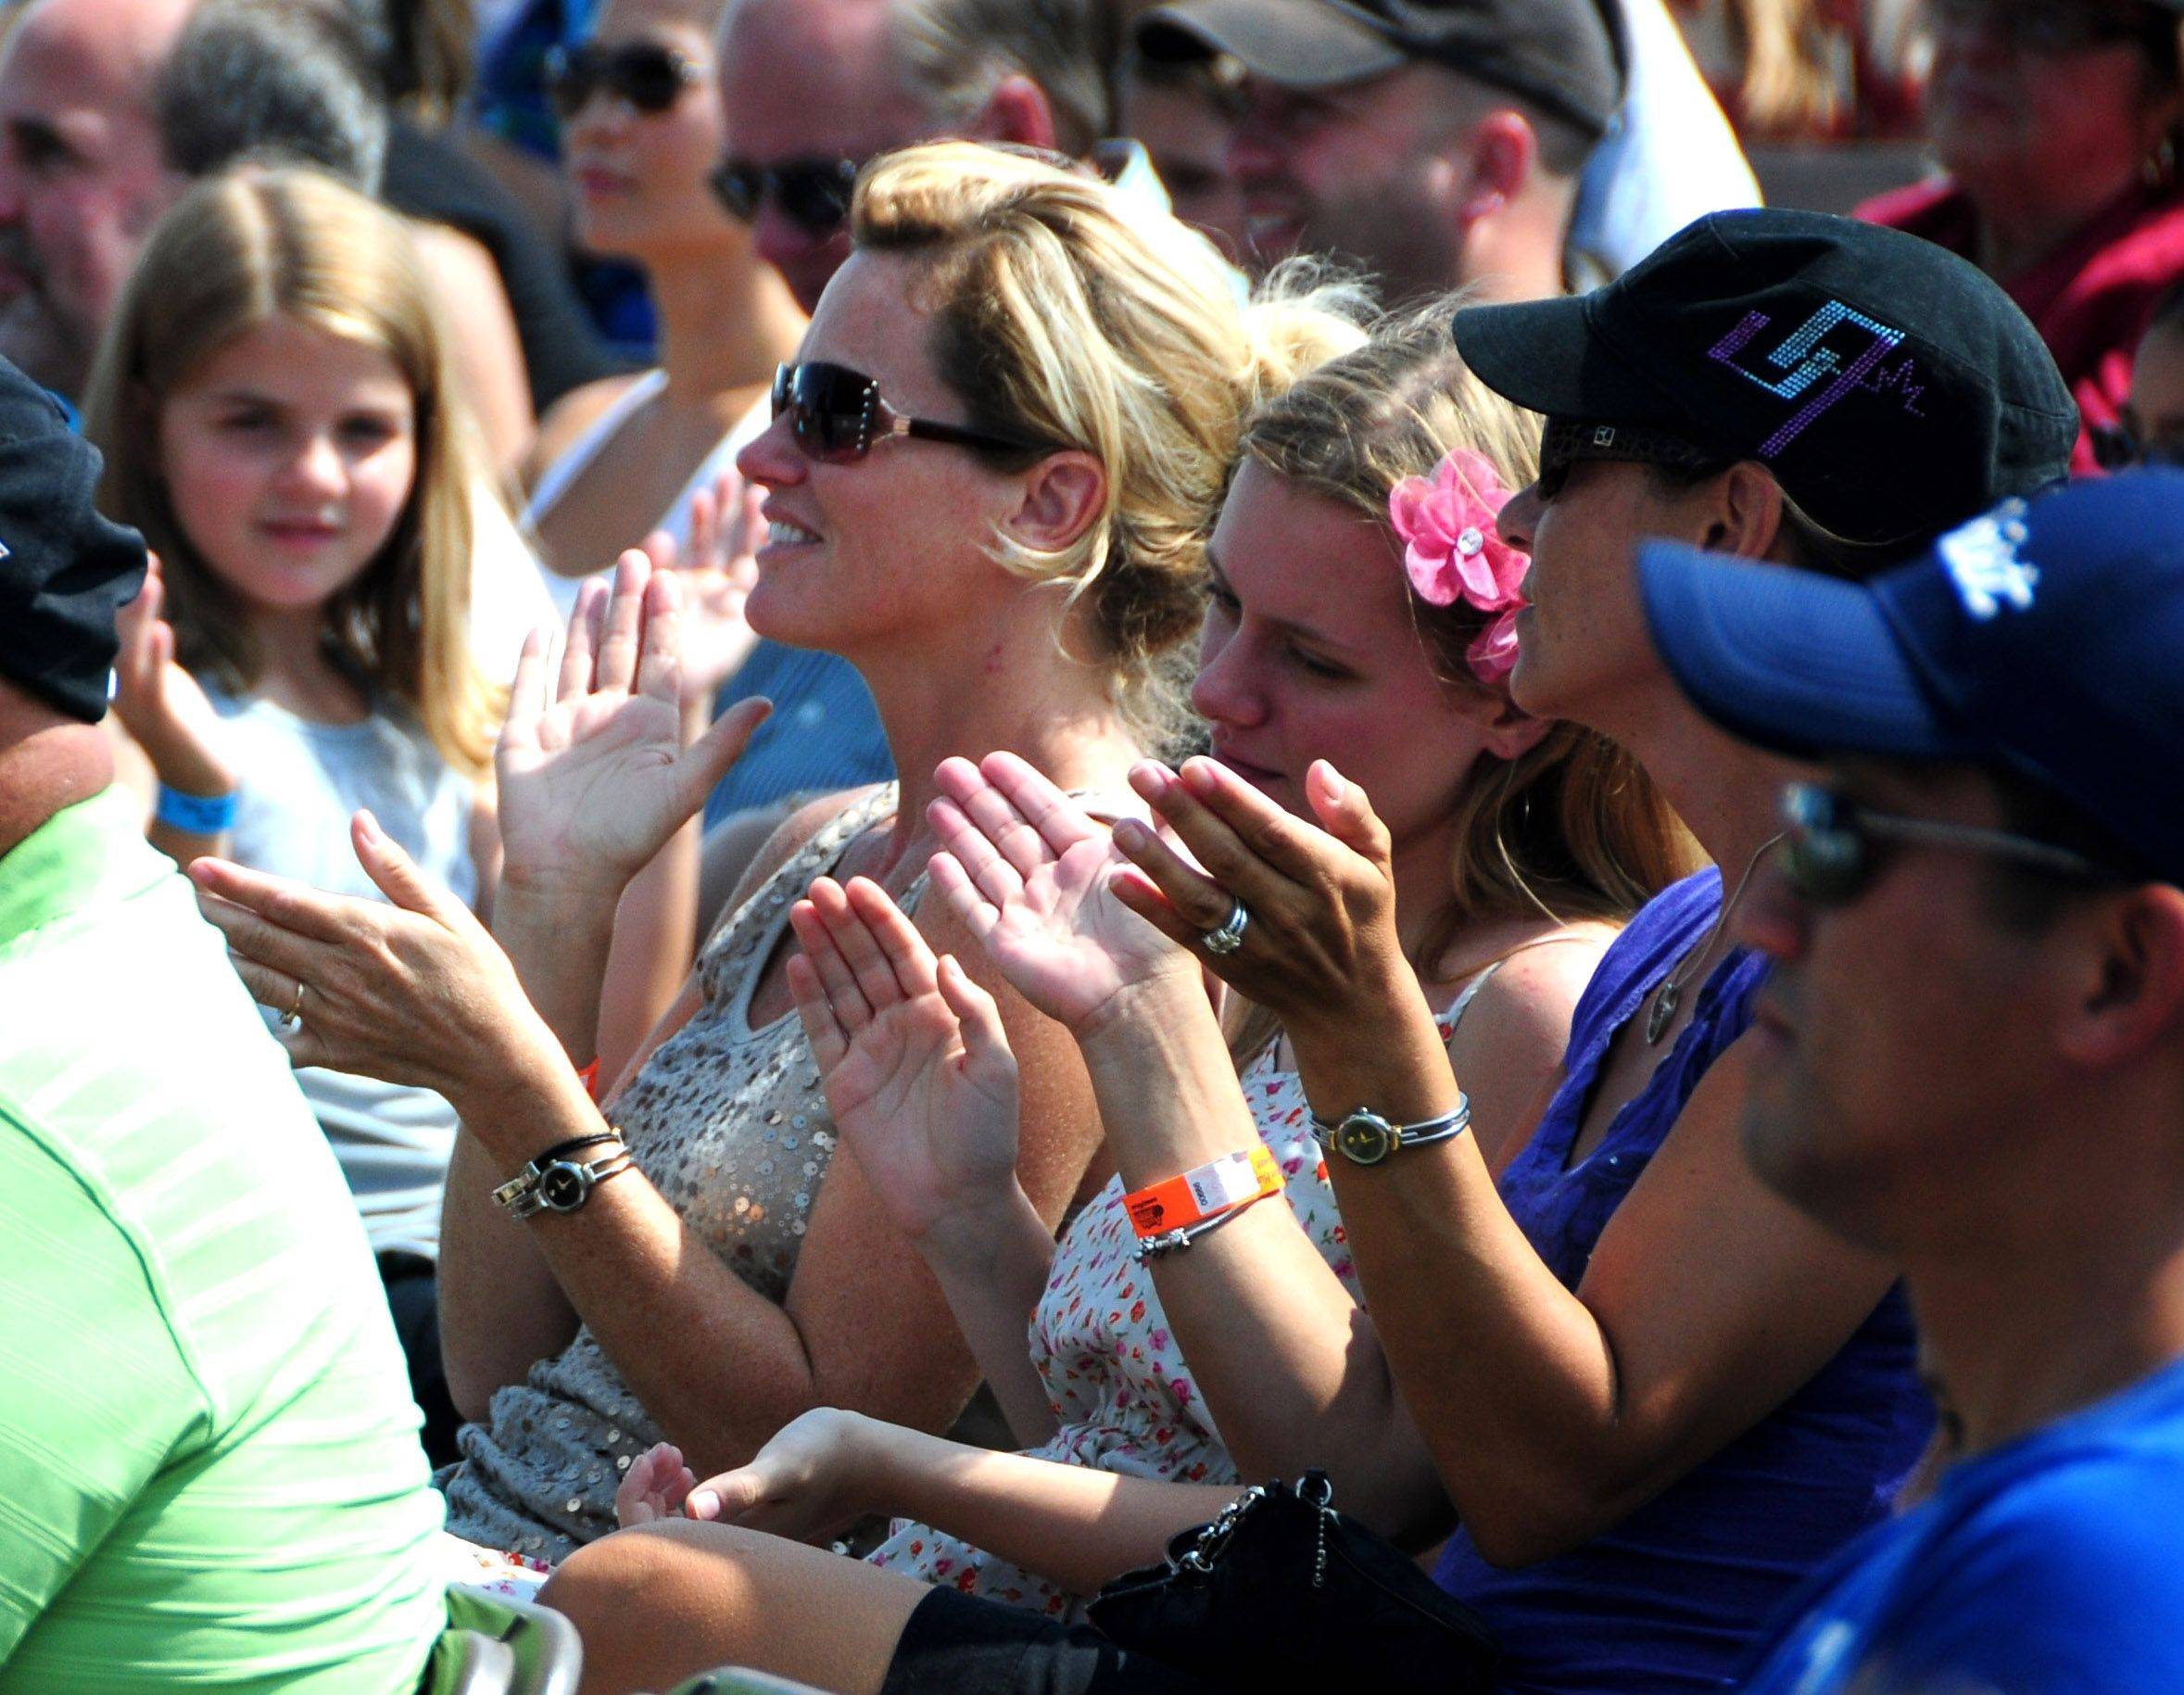 Crowd members applaud for a Dixie Chicks song during the Got Talent competition Sunday at the 12th annual Lake in the Hills Summer Sunset Fest at Sunset Park.